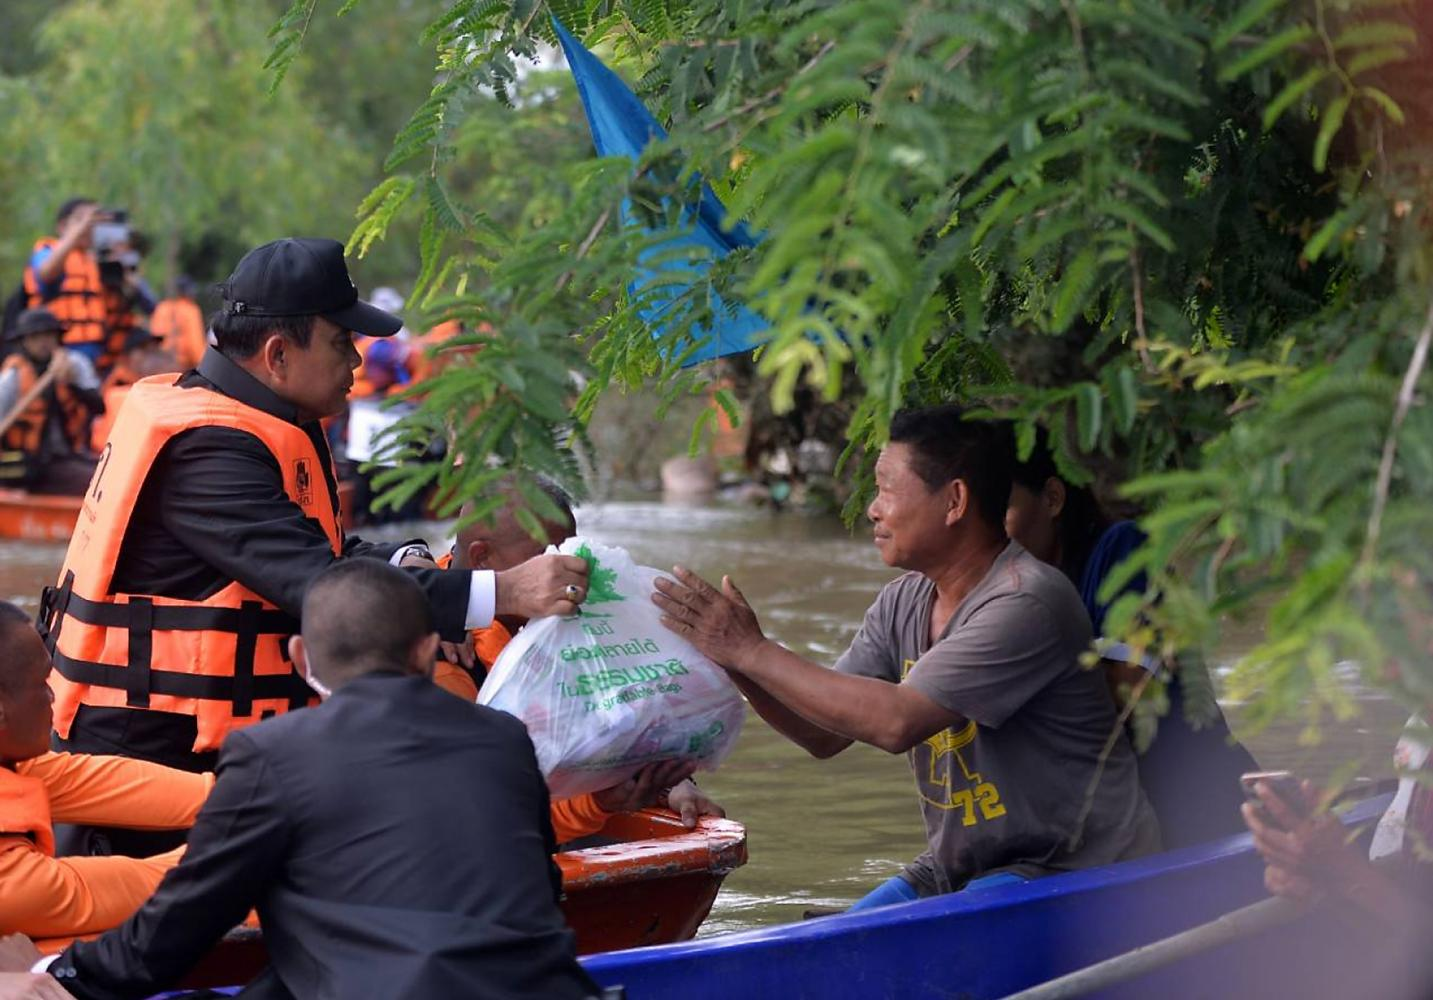 Prime Minister Prayut Chan-o-cha hands relief supplies to flood victims in Warin Chamrap district during his trip to the Northeastern province of Ubon Ratchathani on Thursday. (Photo by Government House)